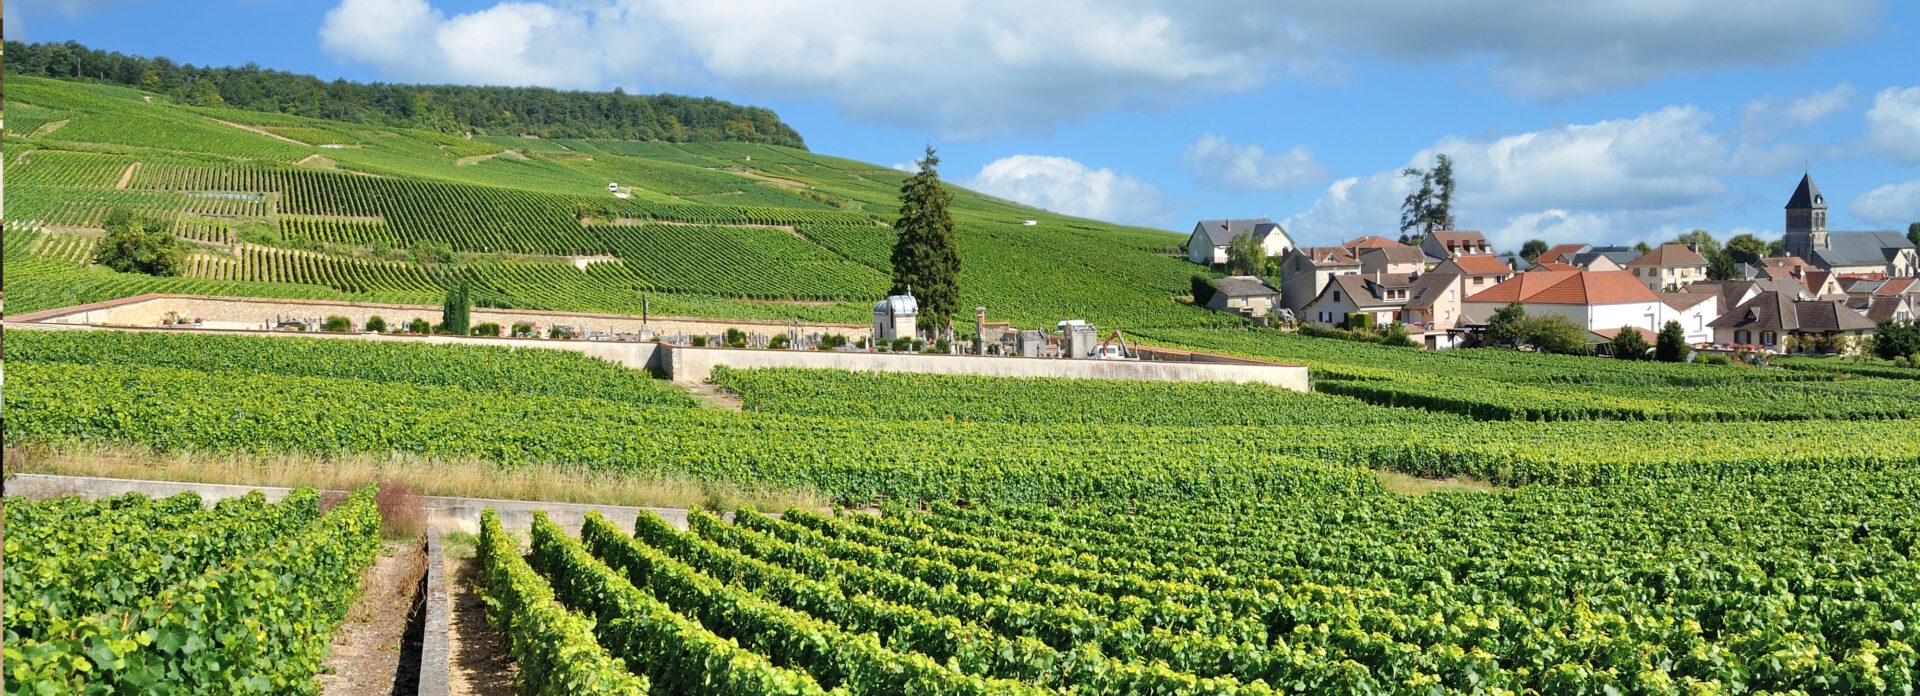 Champagne region bil Frankrike Paris reise tips guide